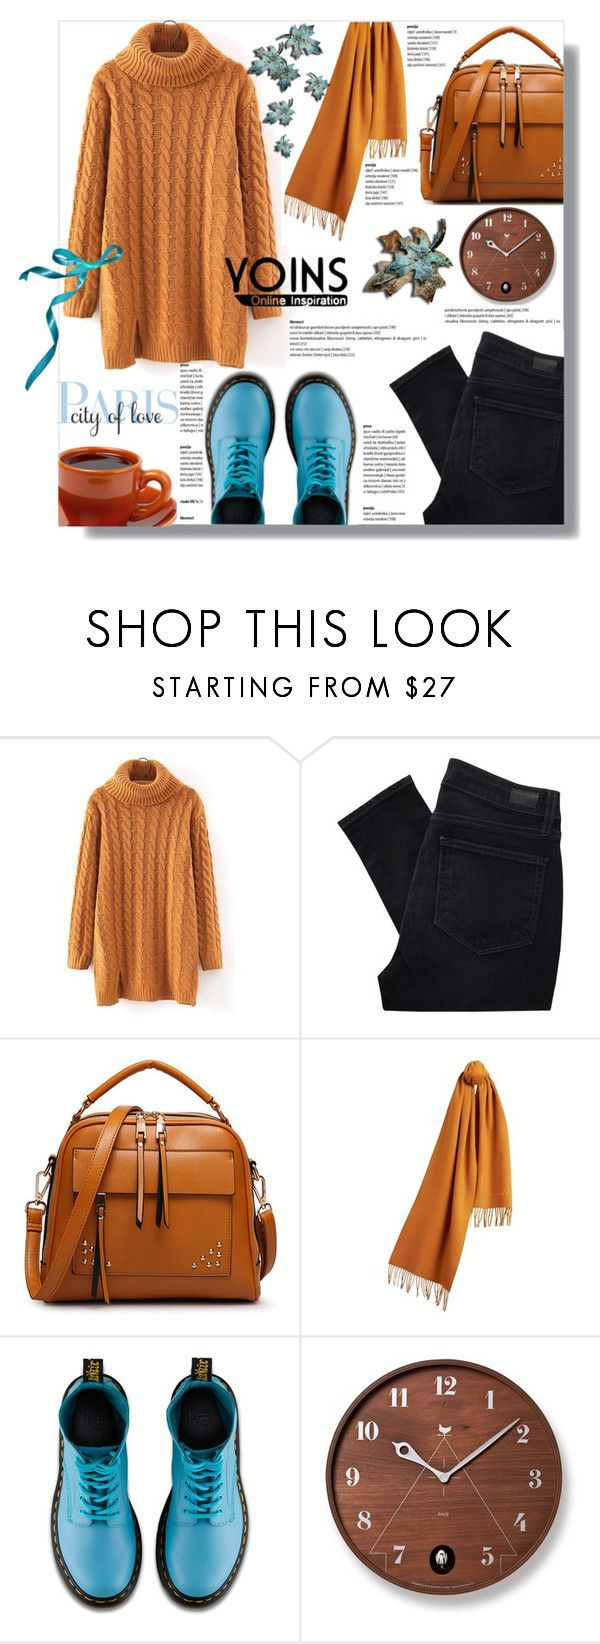 """""""Hijab"""" by sans-moderation ❤ liked on Polyvore featuring Paige Denim, Burberry, Dr. Martens, West Elm, hijab and yoins"""